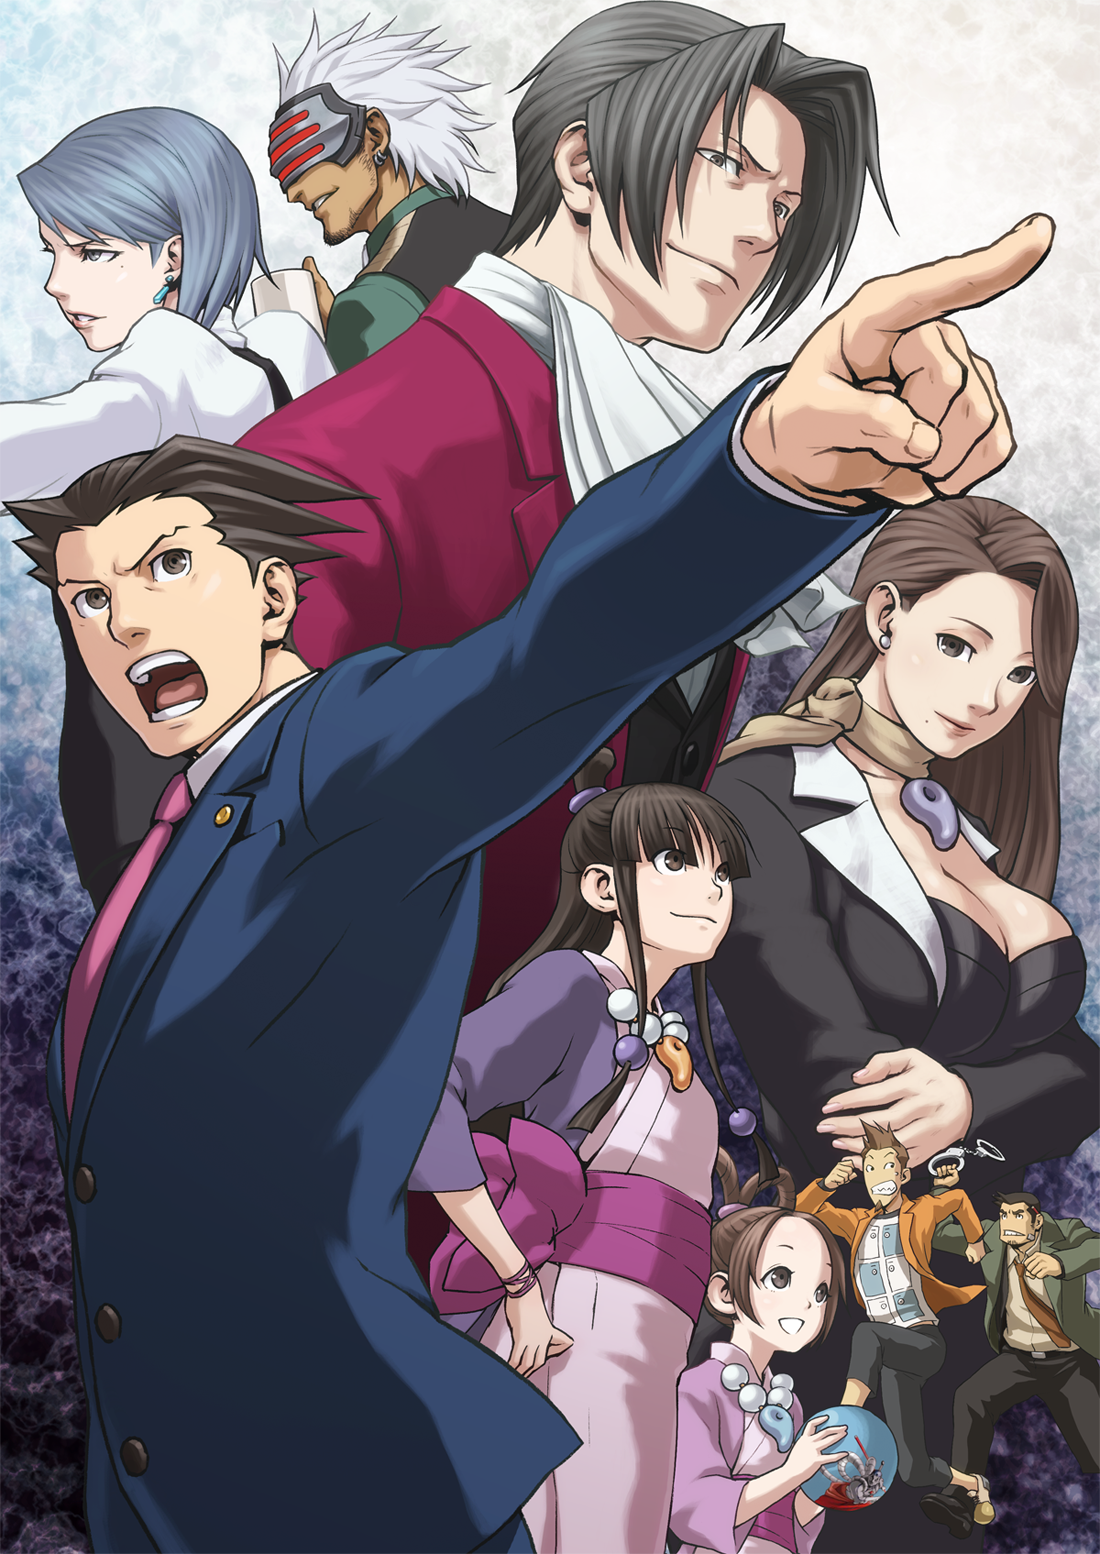 Nycc 14 Phoenix Wright Ace Attorney Trilogy Arrives This December Objection Phoenix Wright Professor Layton Apollo Justice